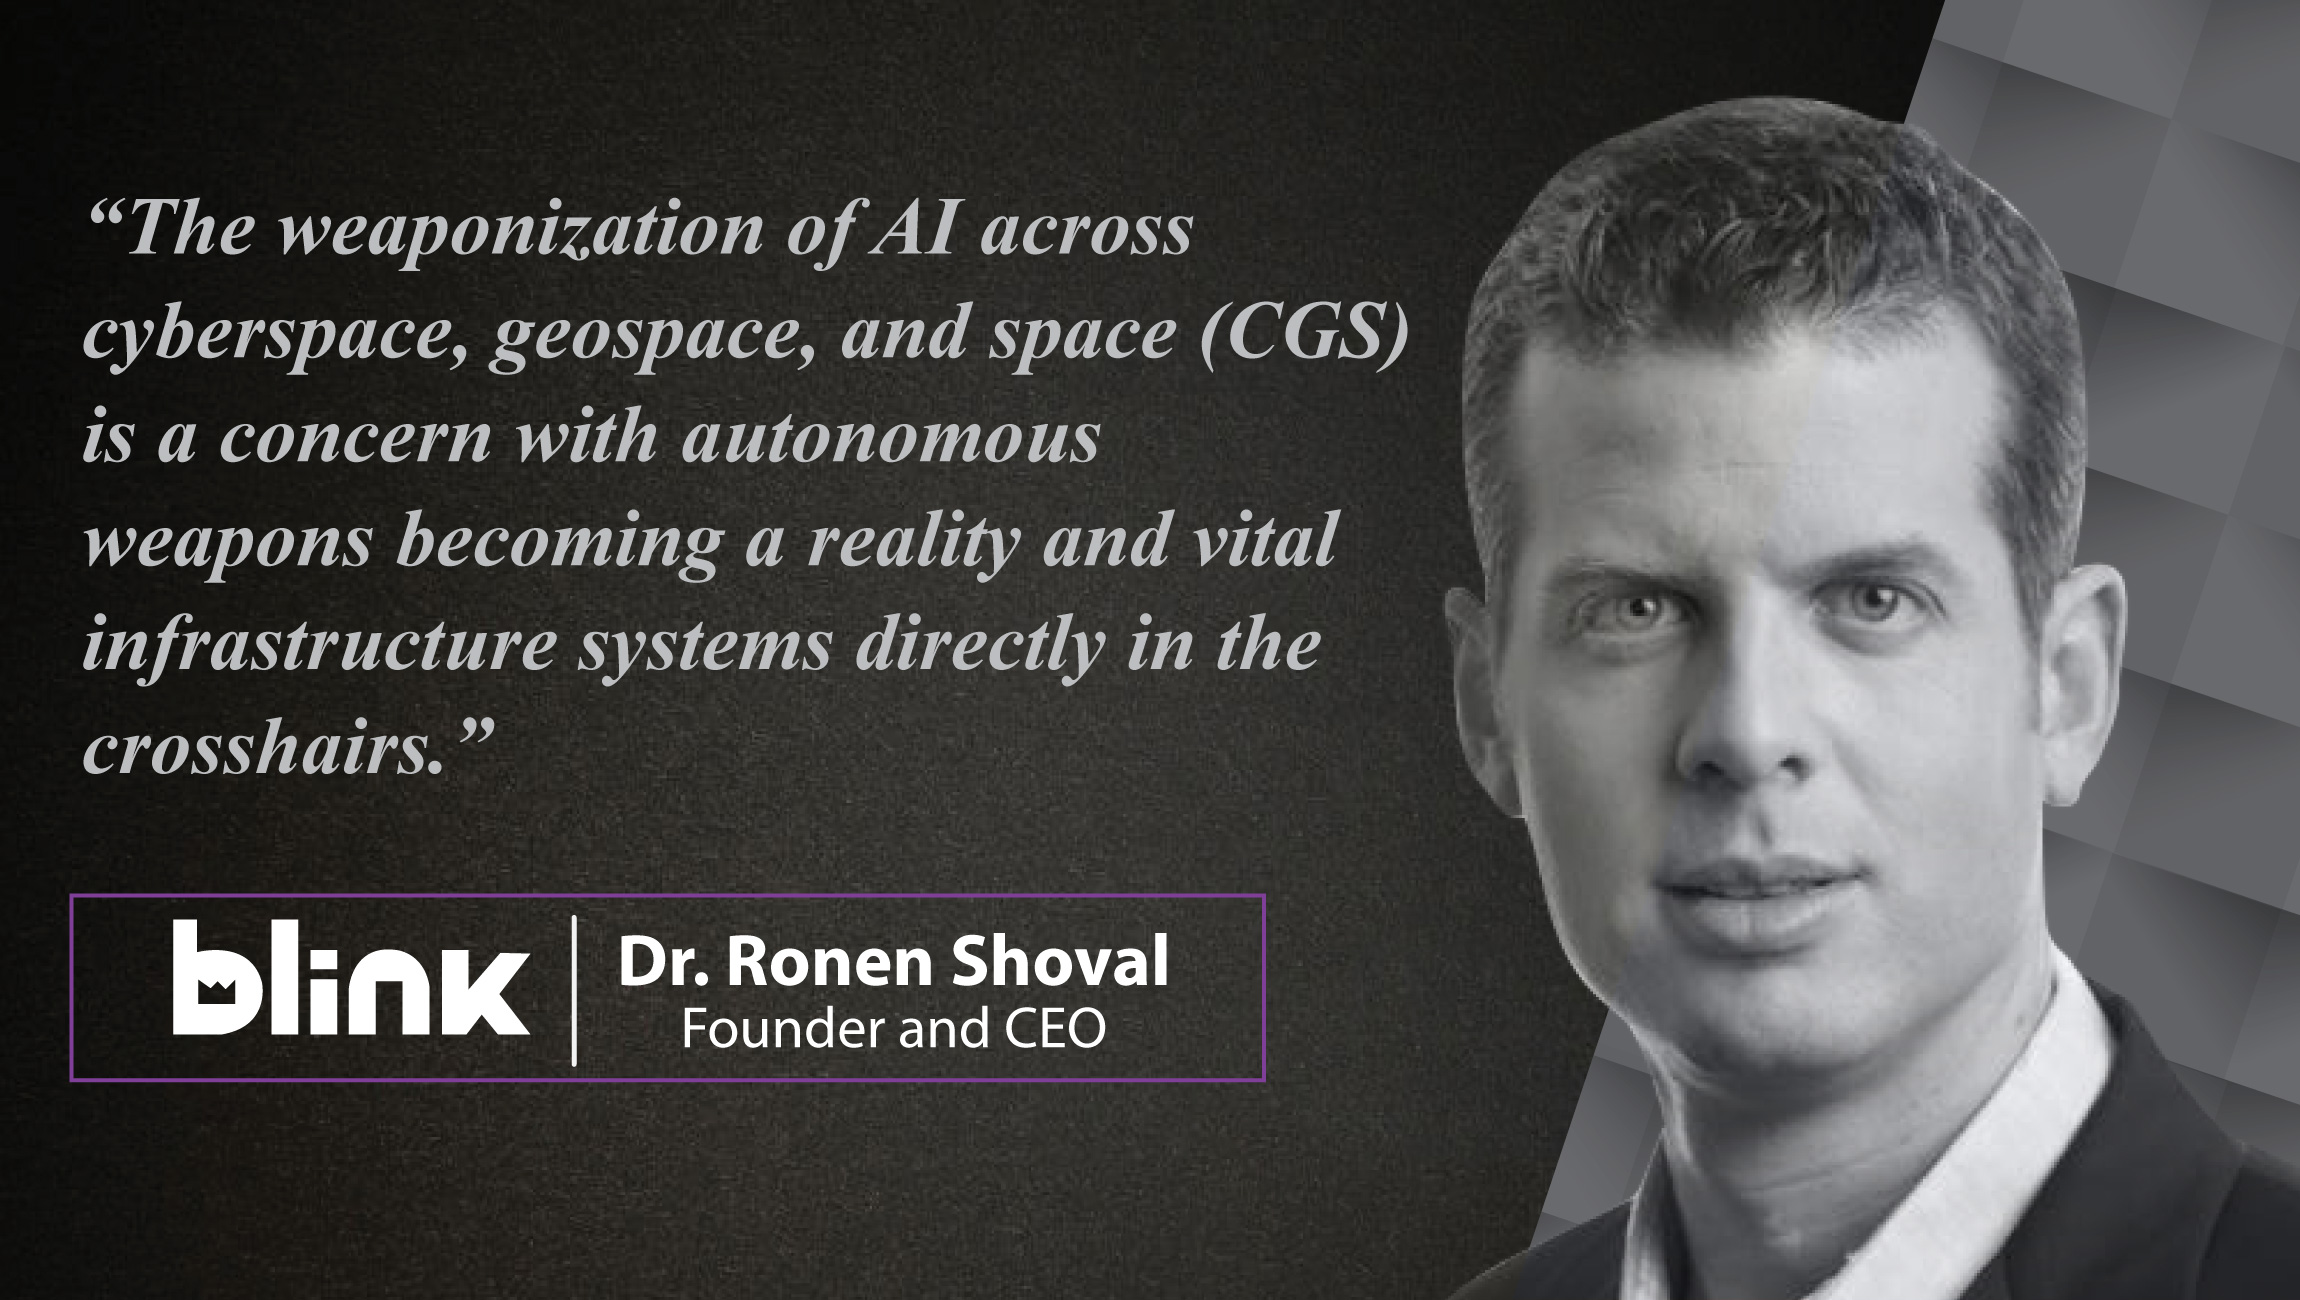 AiThority Interview Series with Dr. Ronen Shoval, Founder and CEO, BLINK_cue card